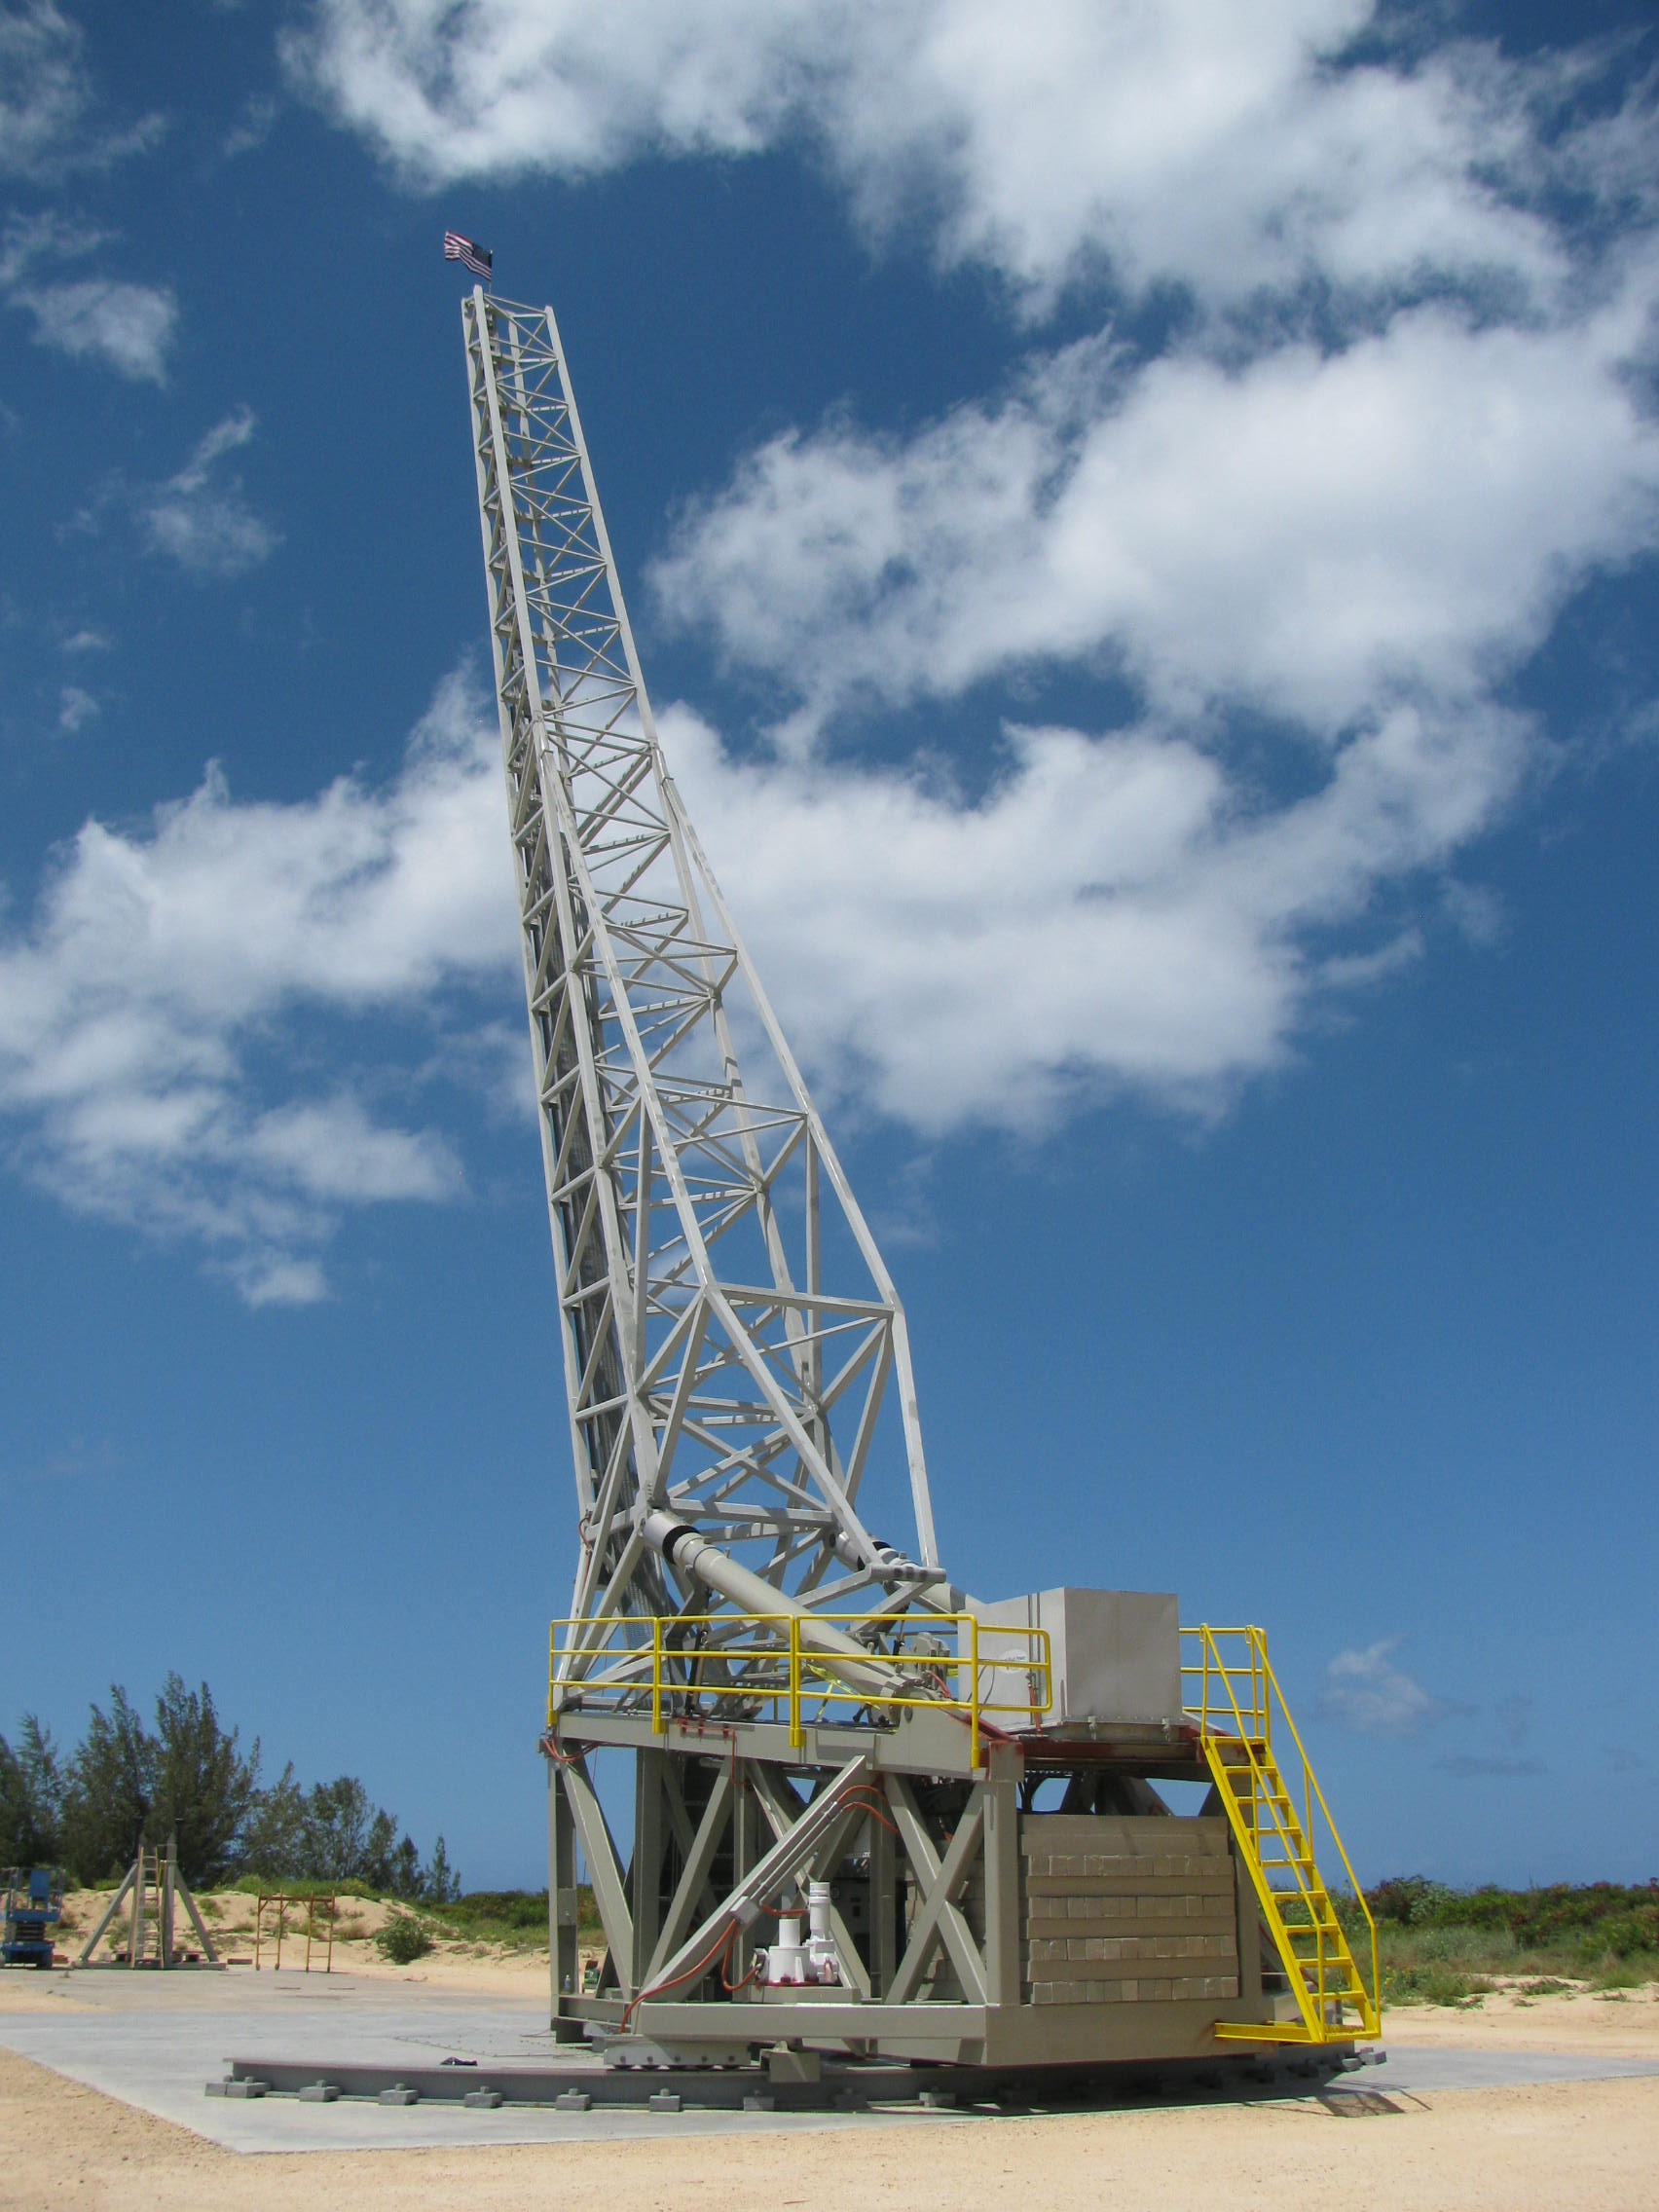 The rail launch system used by the Super Strypi vehicle is modified from the rail launcher from the Scout rocket program retired in the 1990s. It stands more than 100 feet tall. Credit: University of Hawaii